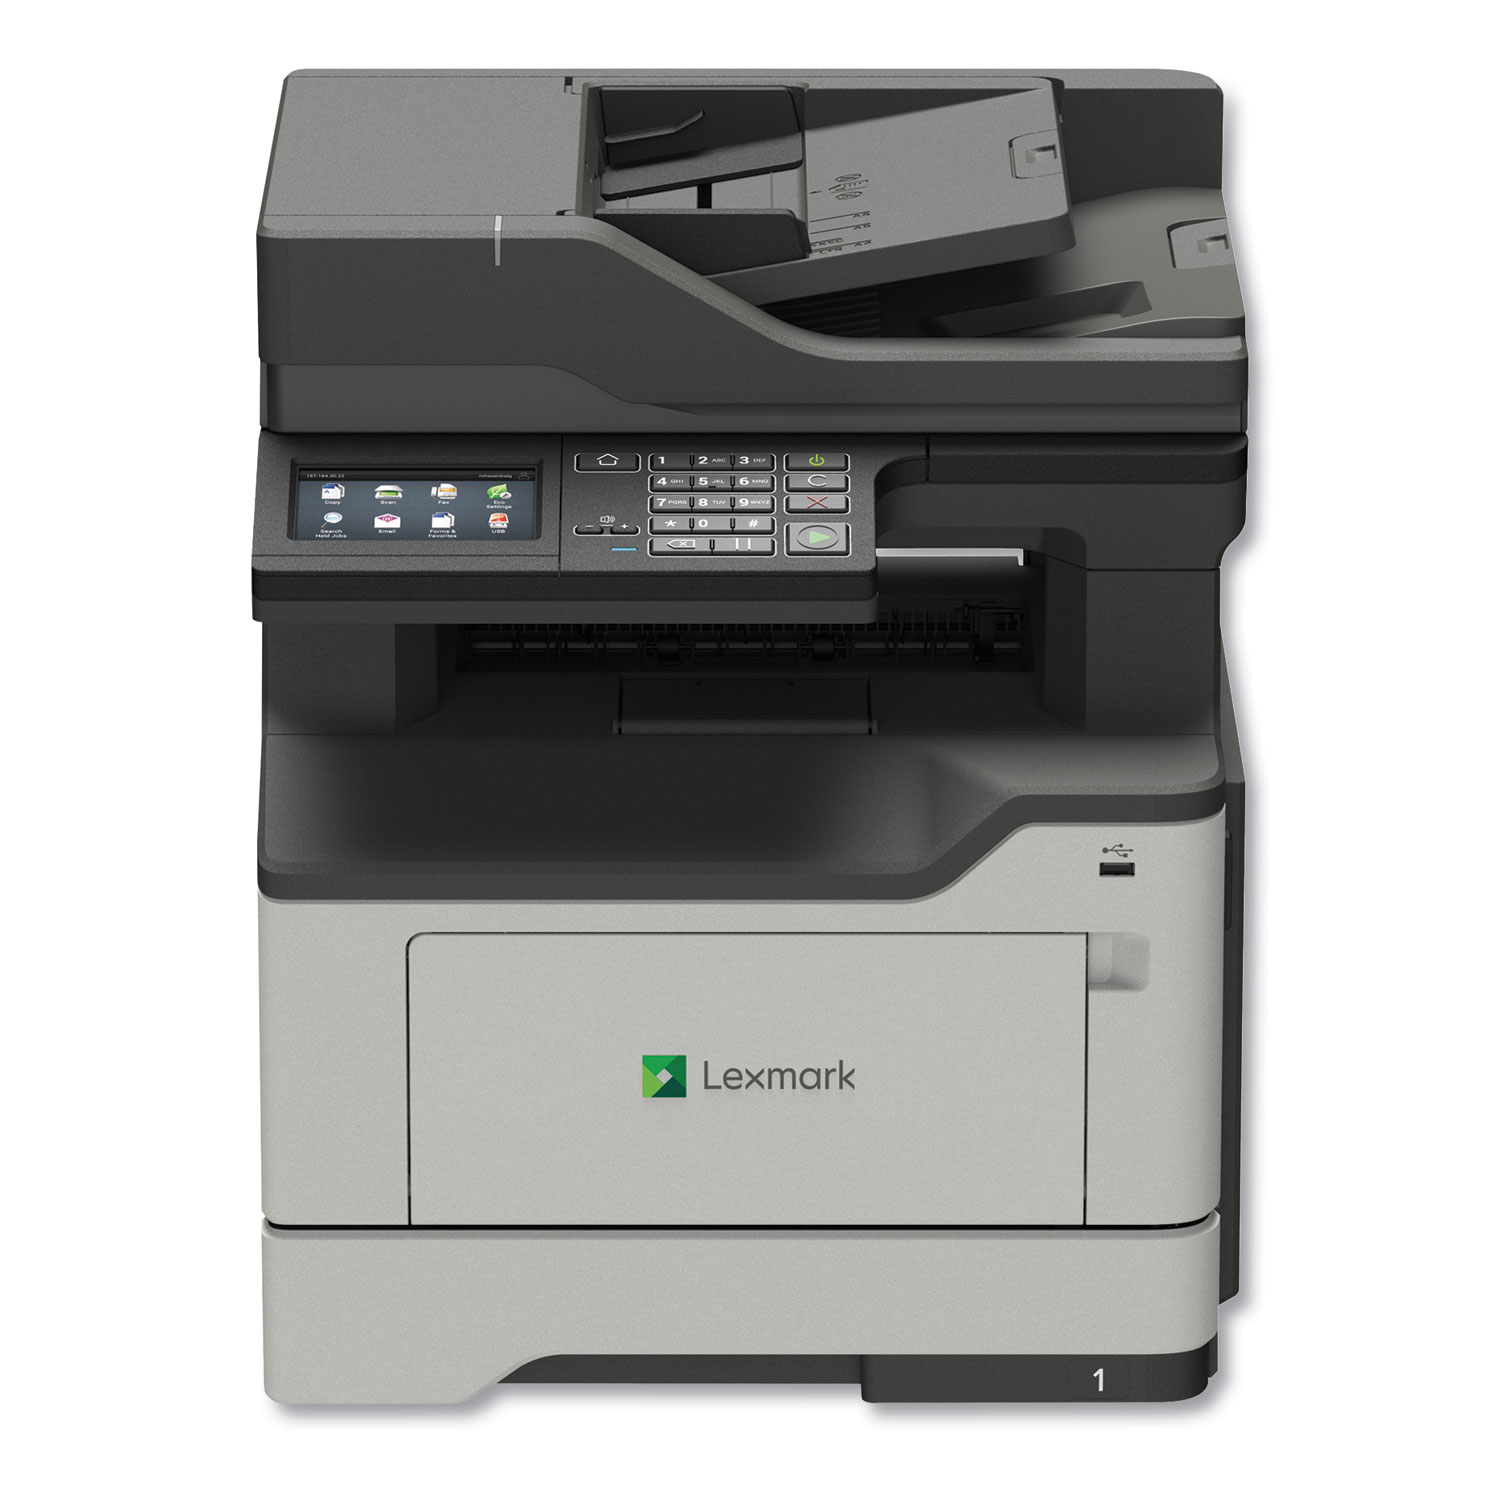 MX421ade Monochrome Laser Multifunction Printer, Copy/Fax/Print/Scan